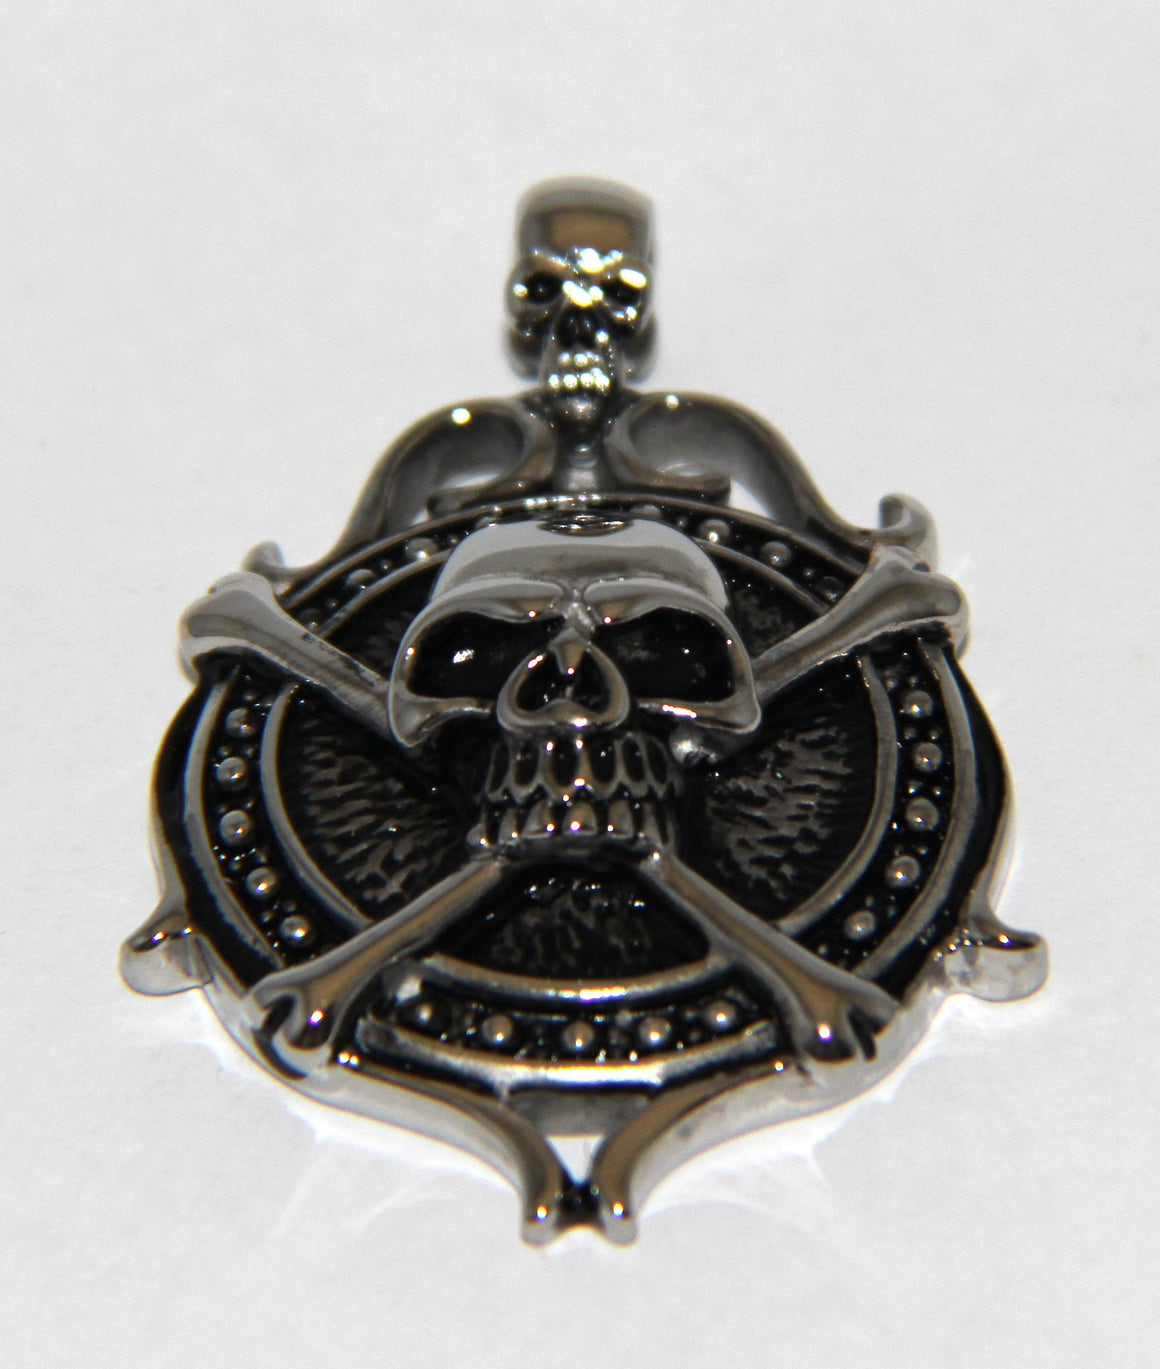 Stainless Steel Skull Shield with Cross and Bone- UDINC0486